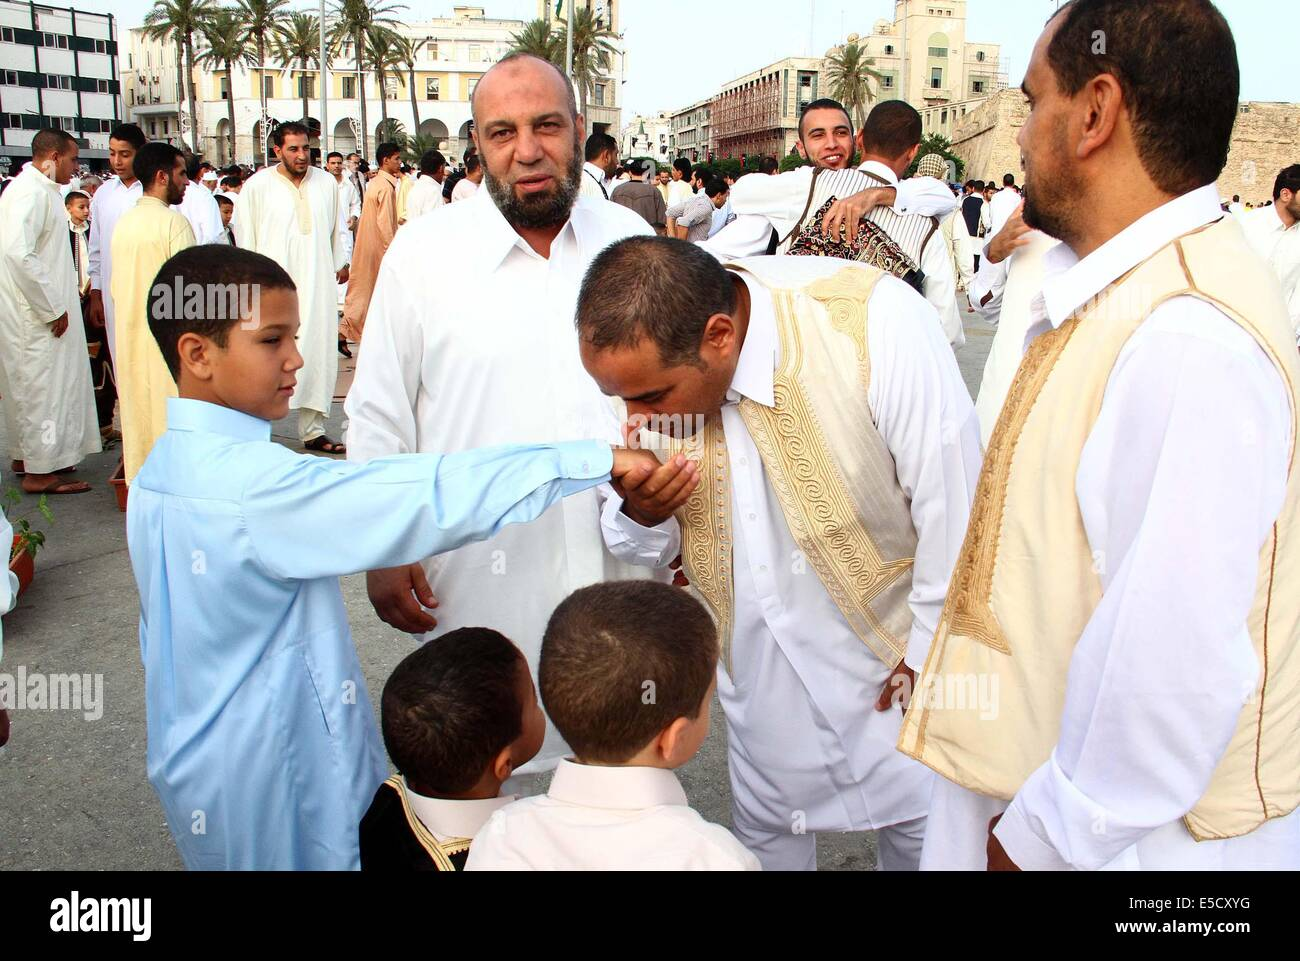 Tripoli libya 28th july 2014 people greet each other before a people greet each other before a prayer in martyrs square in tripoli libya on july 28 2014 libyan muslims prayed on monday morning to kristyandbryce Images